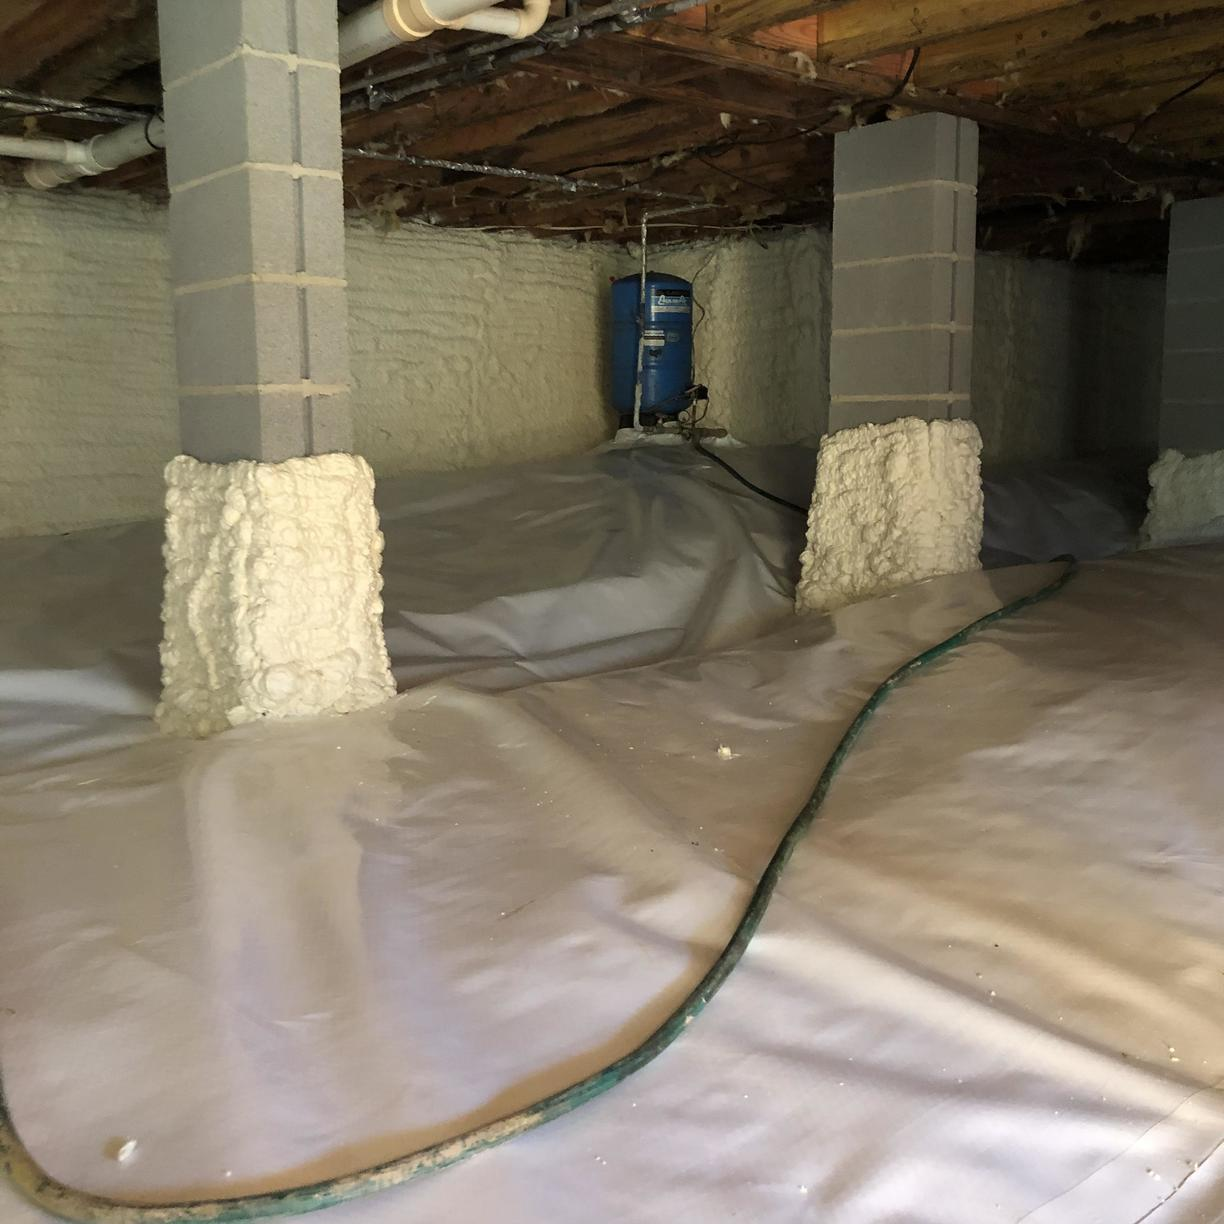 Closed cell spray foam and CleanSpace liner